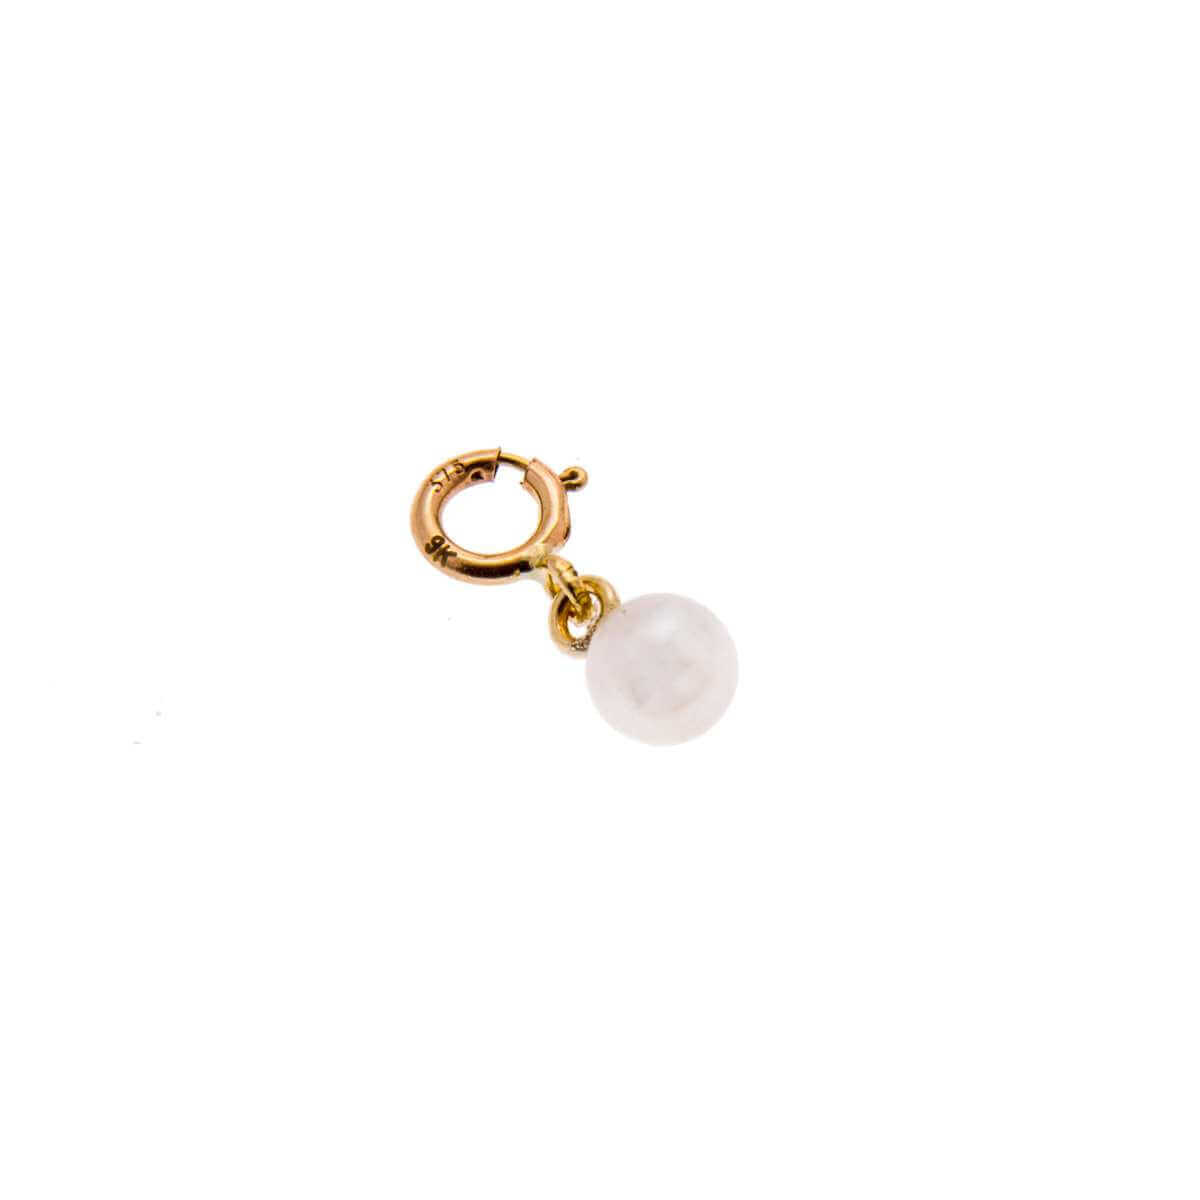 9ct Gold 4mm White Freshwater Pearl Clip on Charm